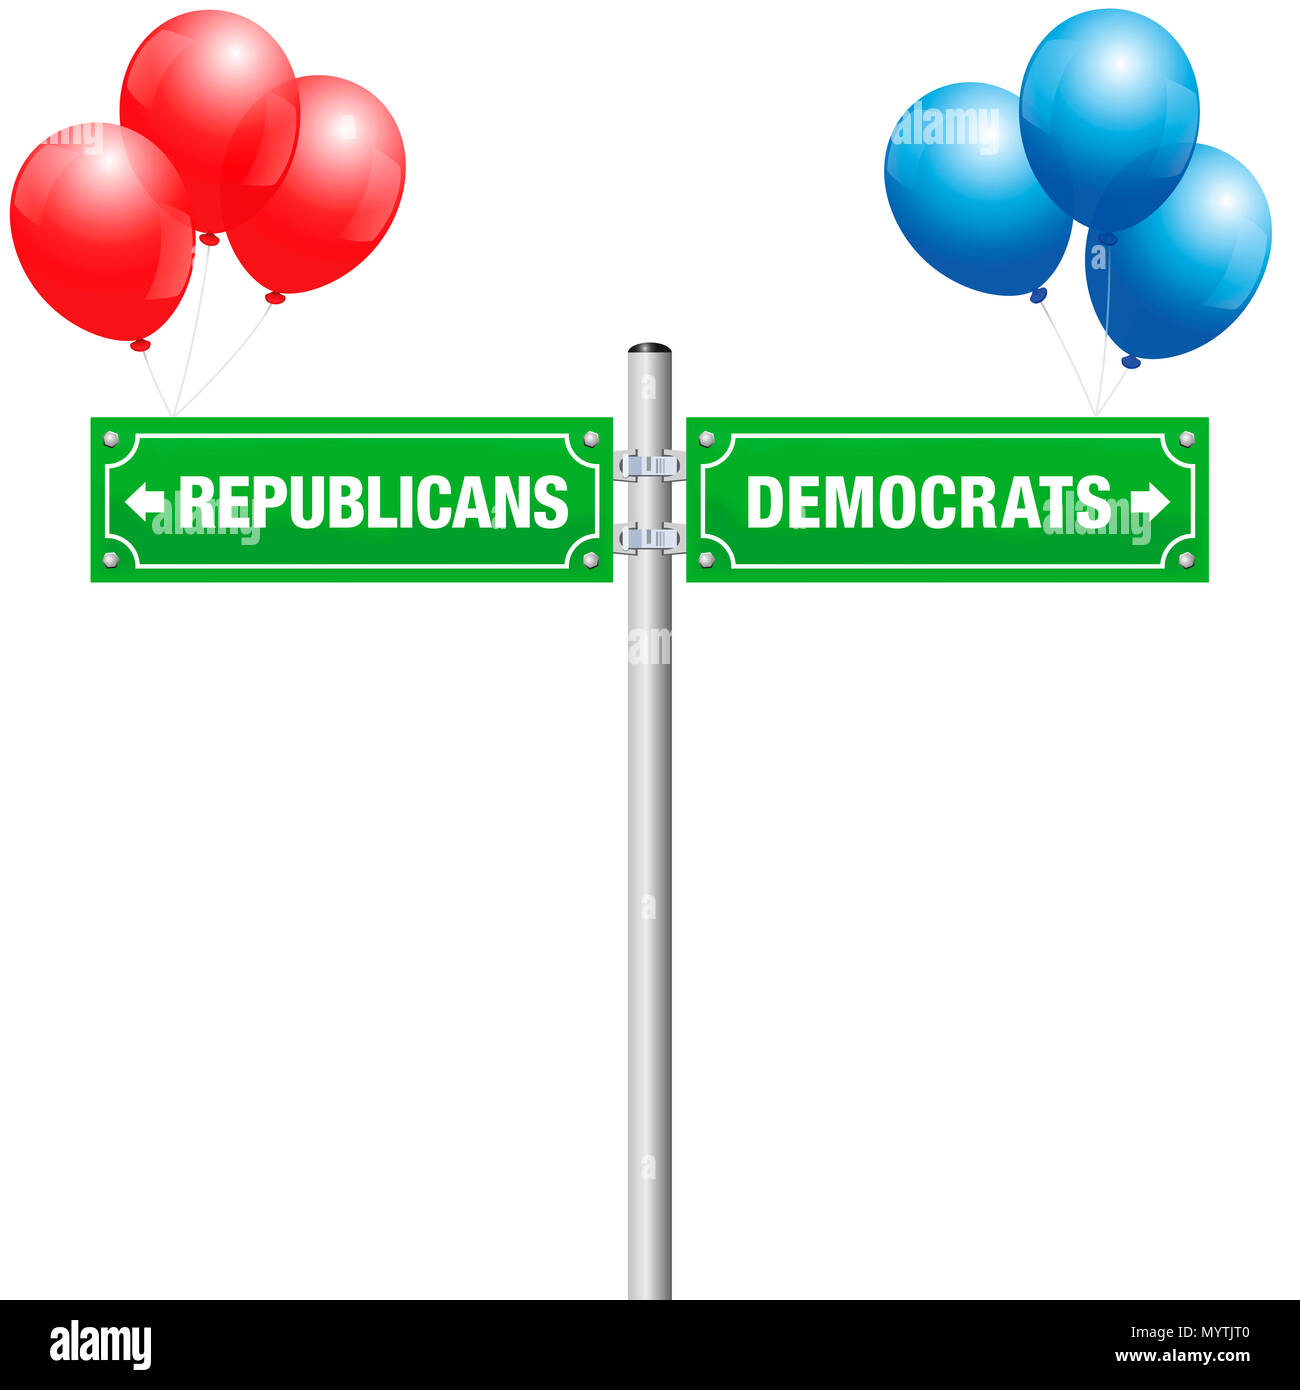 DEMOCRATS or REPUBLICANS, written on street signs with red and blue balloons to choose ones favorite party, government, politics, ideology. - Stock Image